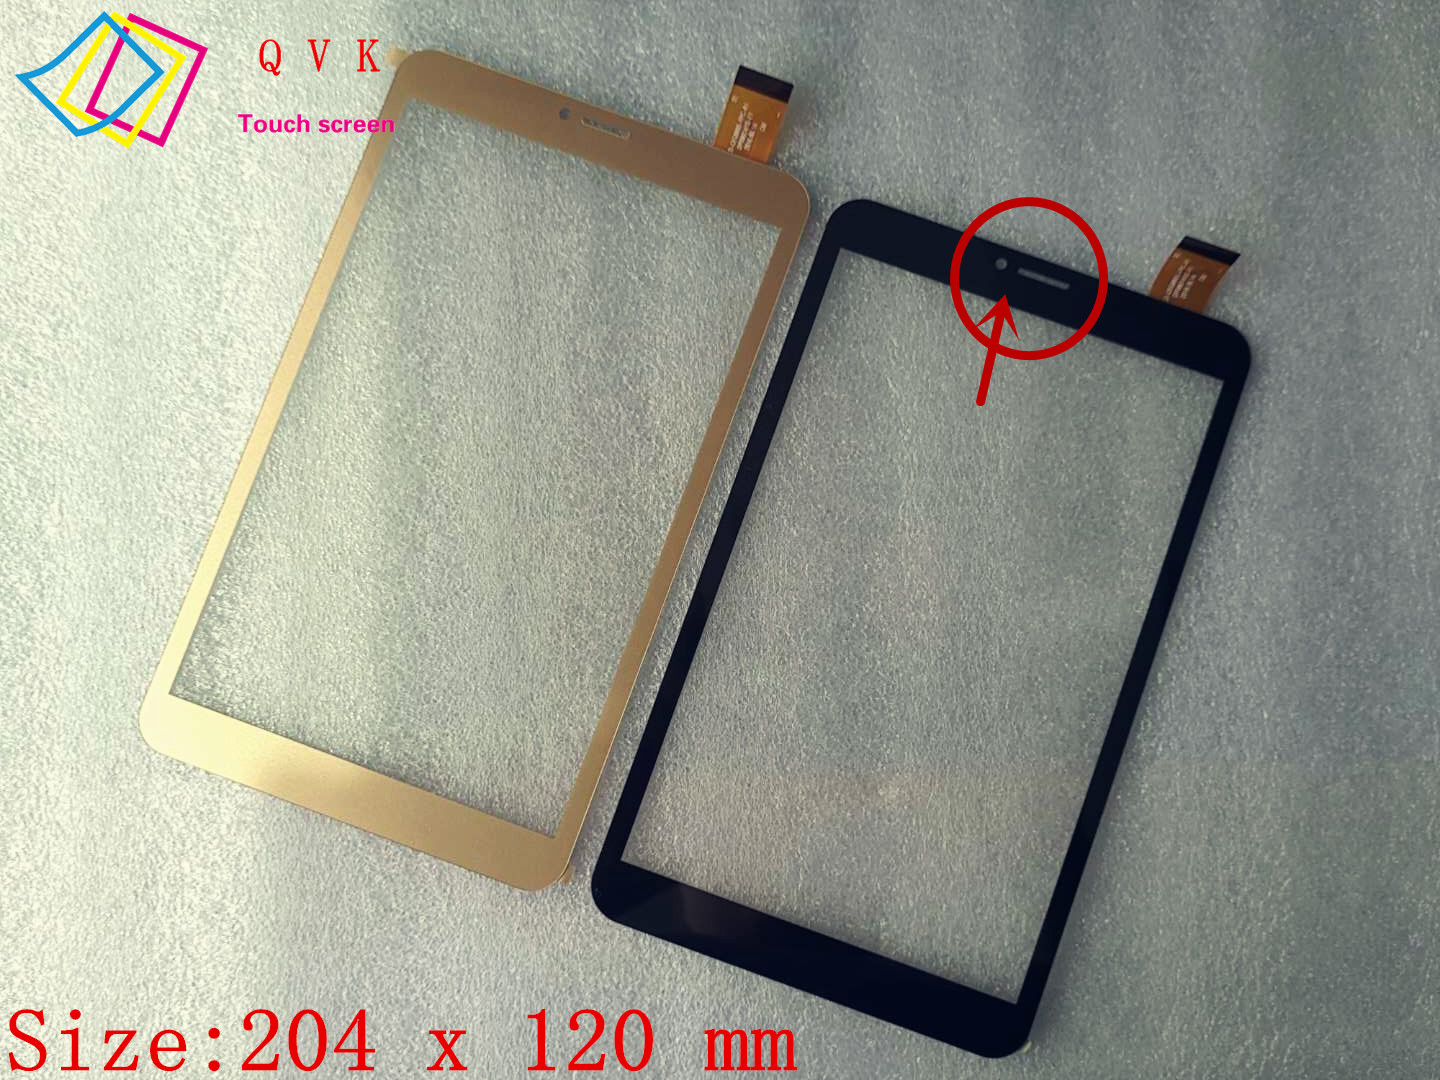 New 8 Inch For Digma Optima 8002 3G TS8001PG Tablet Pc Capacitive Touch Screen Glass Digitizer Panel Free Shipping